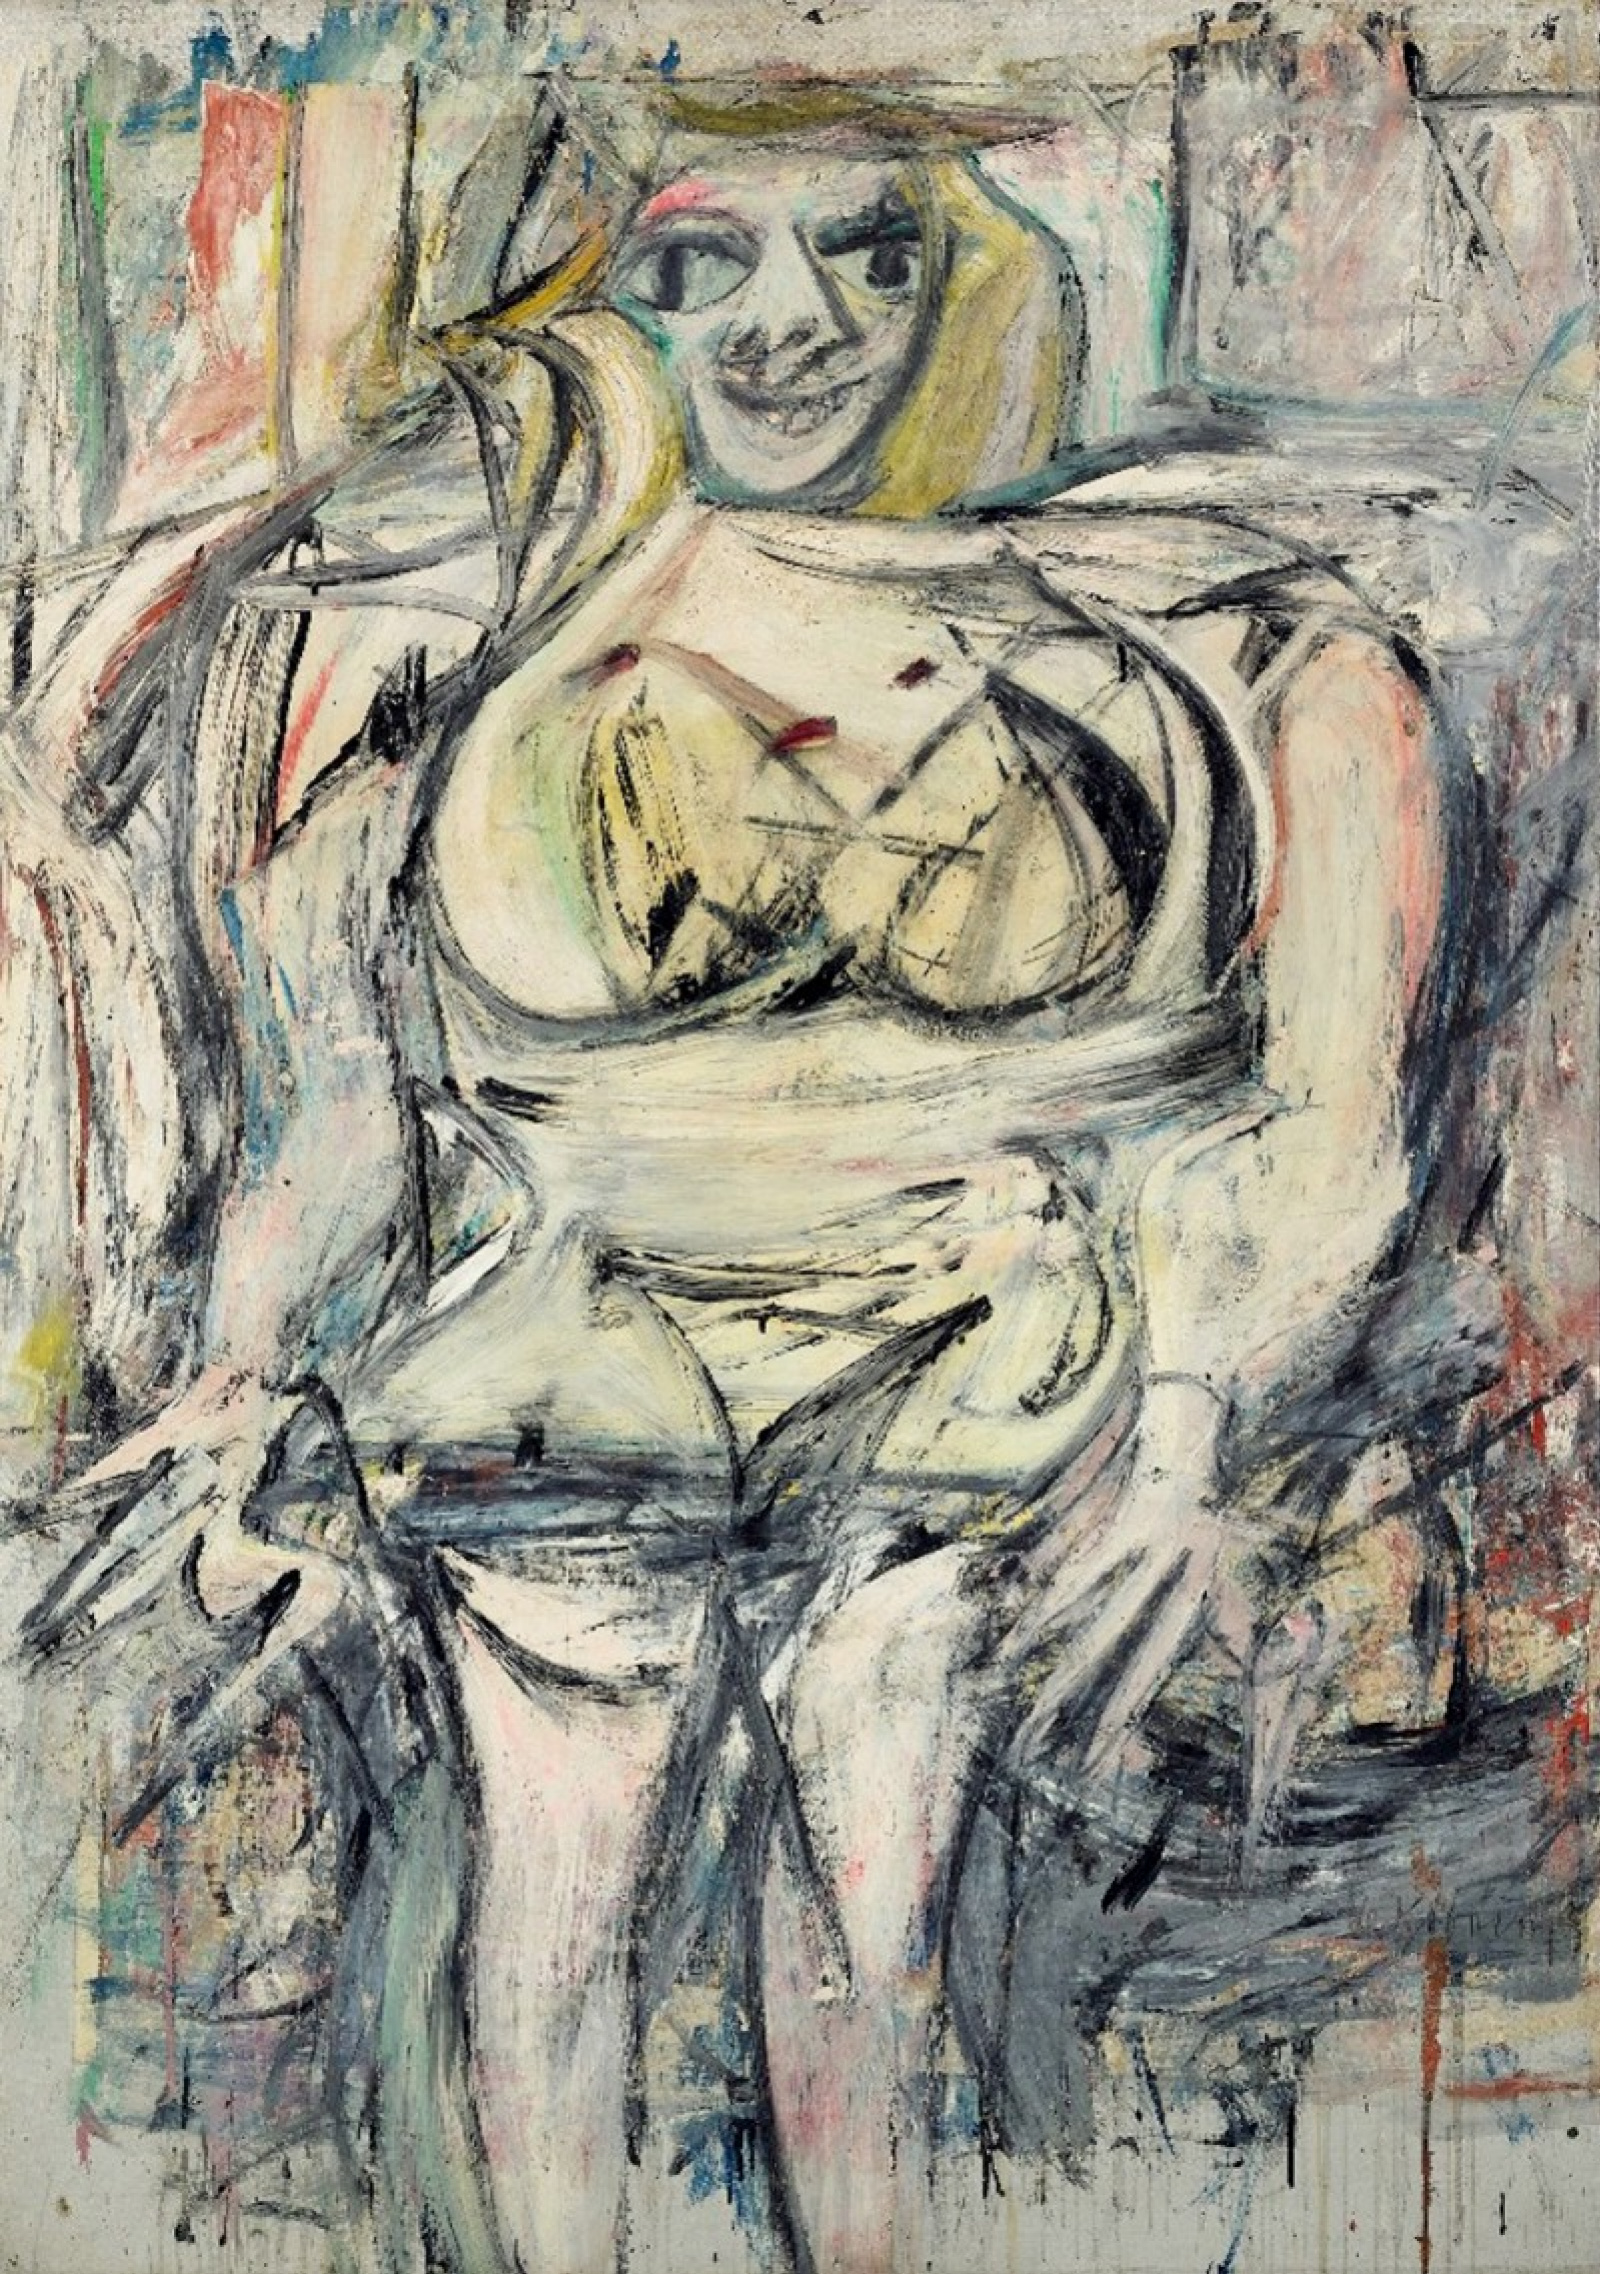 This de Kooning painting is the abstract painting my art presentation is focused on.